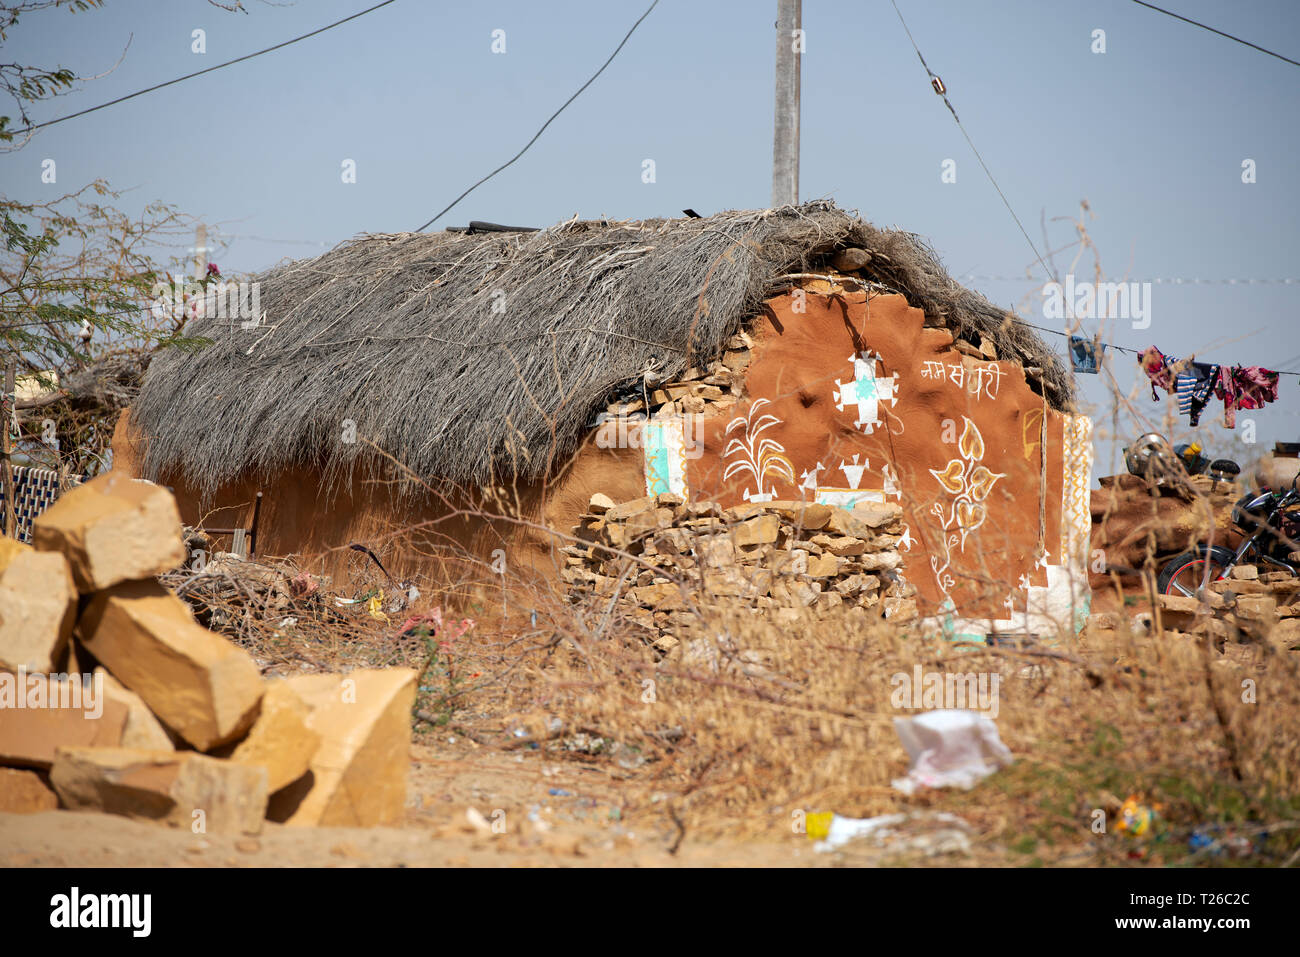 A traditional house of the Bhil tribe in a small village in Rajasthan, India. - Stock Image